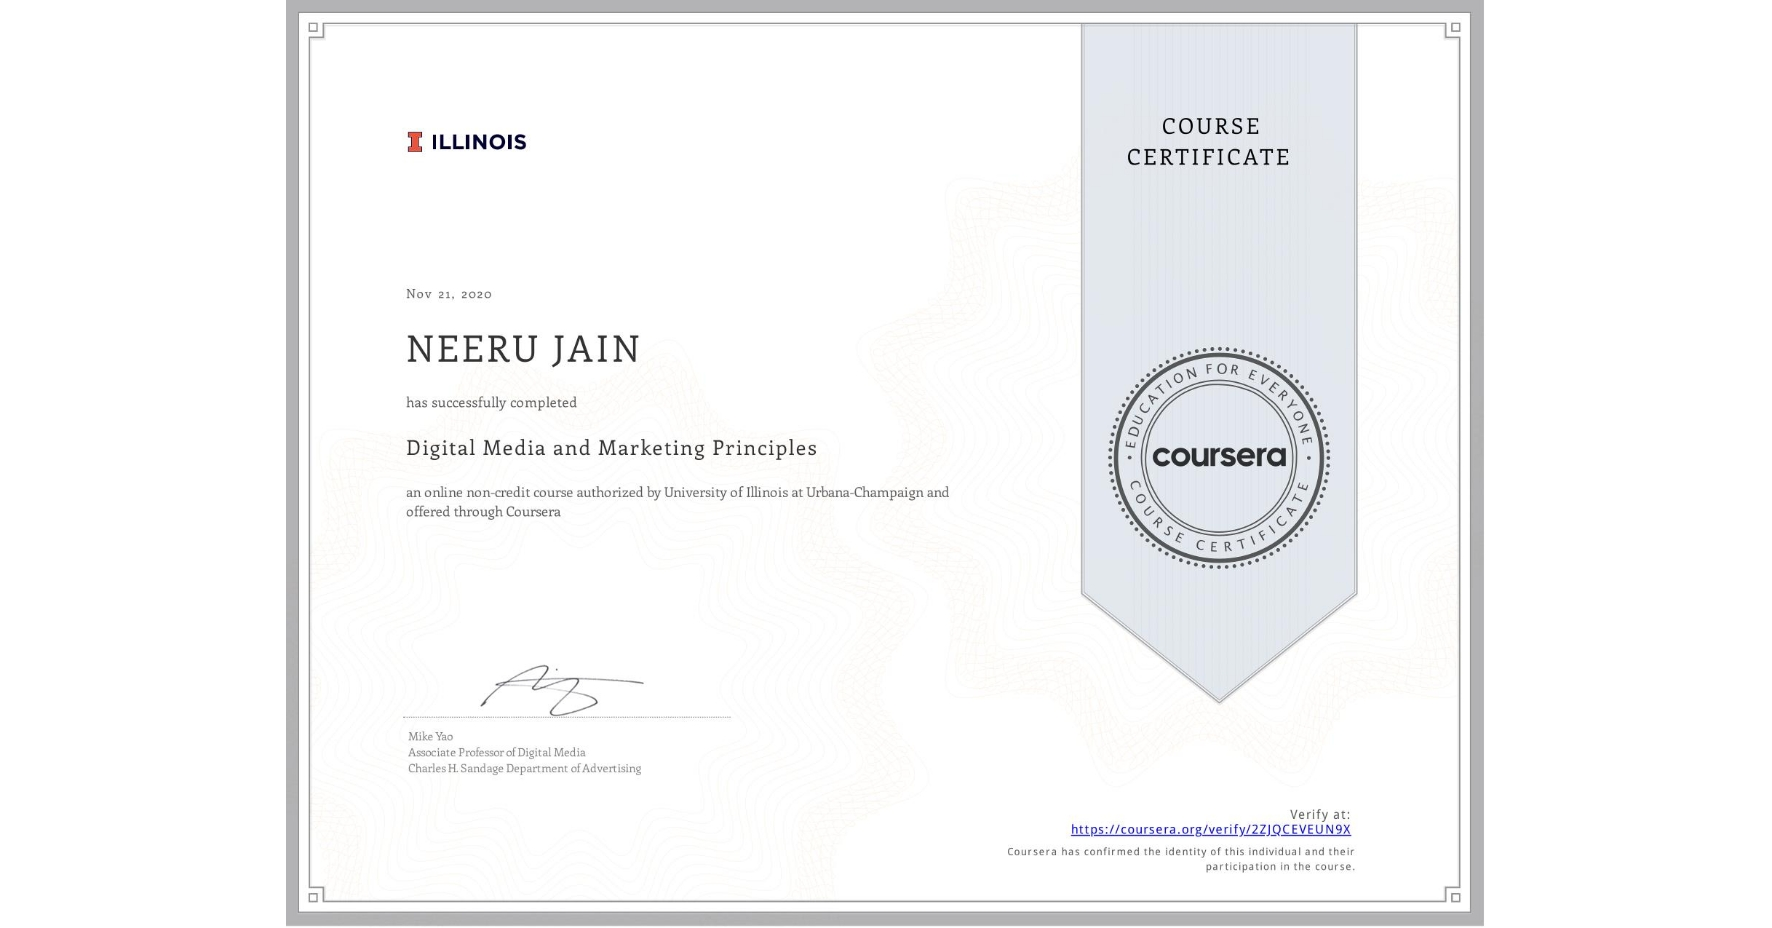 View certificate for NEERU JAIN, Digital Media and Marketing Principles, an online non-credit course authorized by University of Illinois at Urbana-Champaign and offered through Coursera